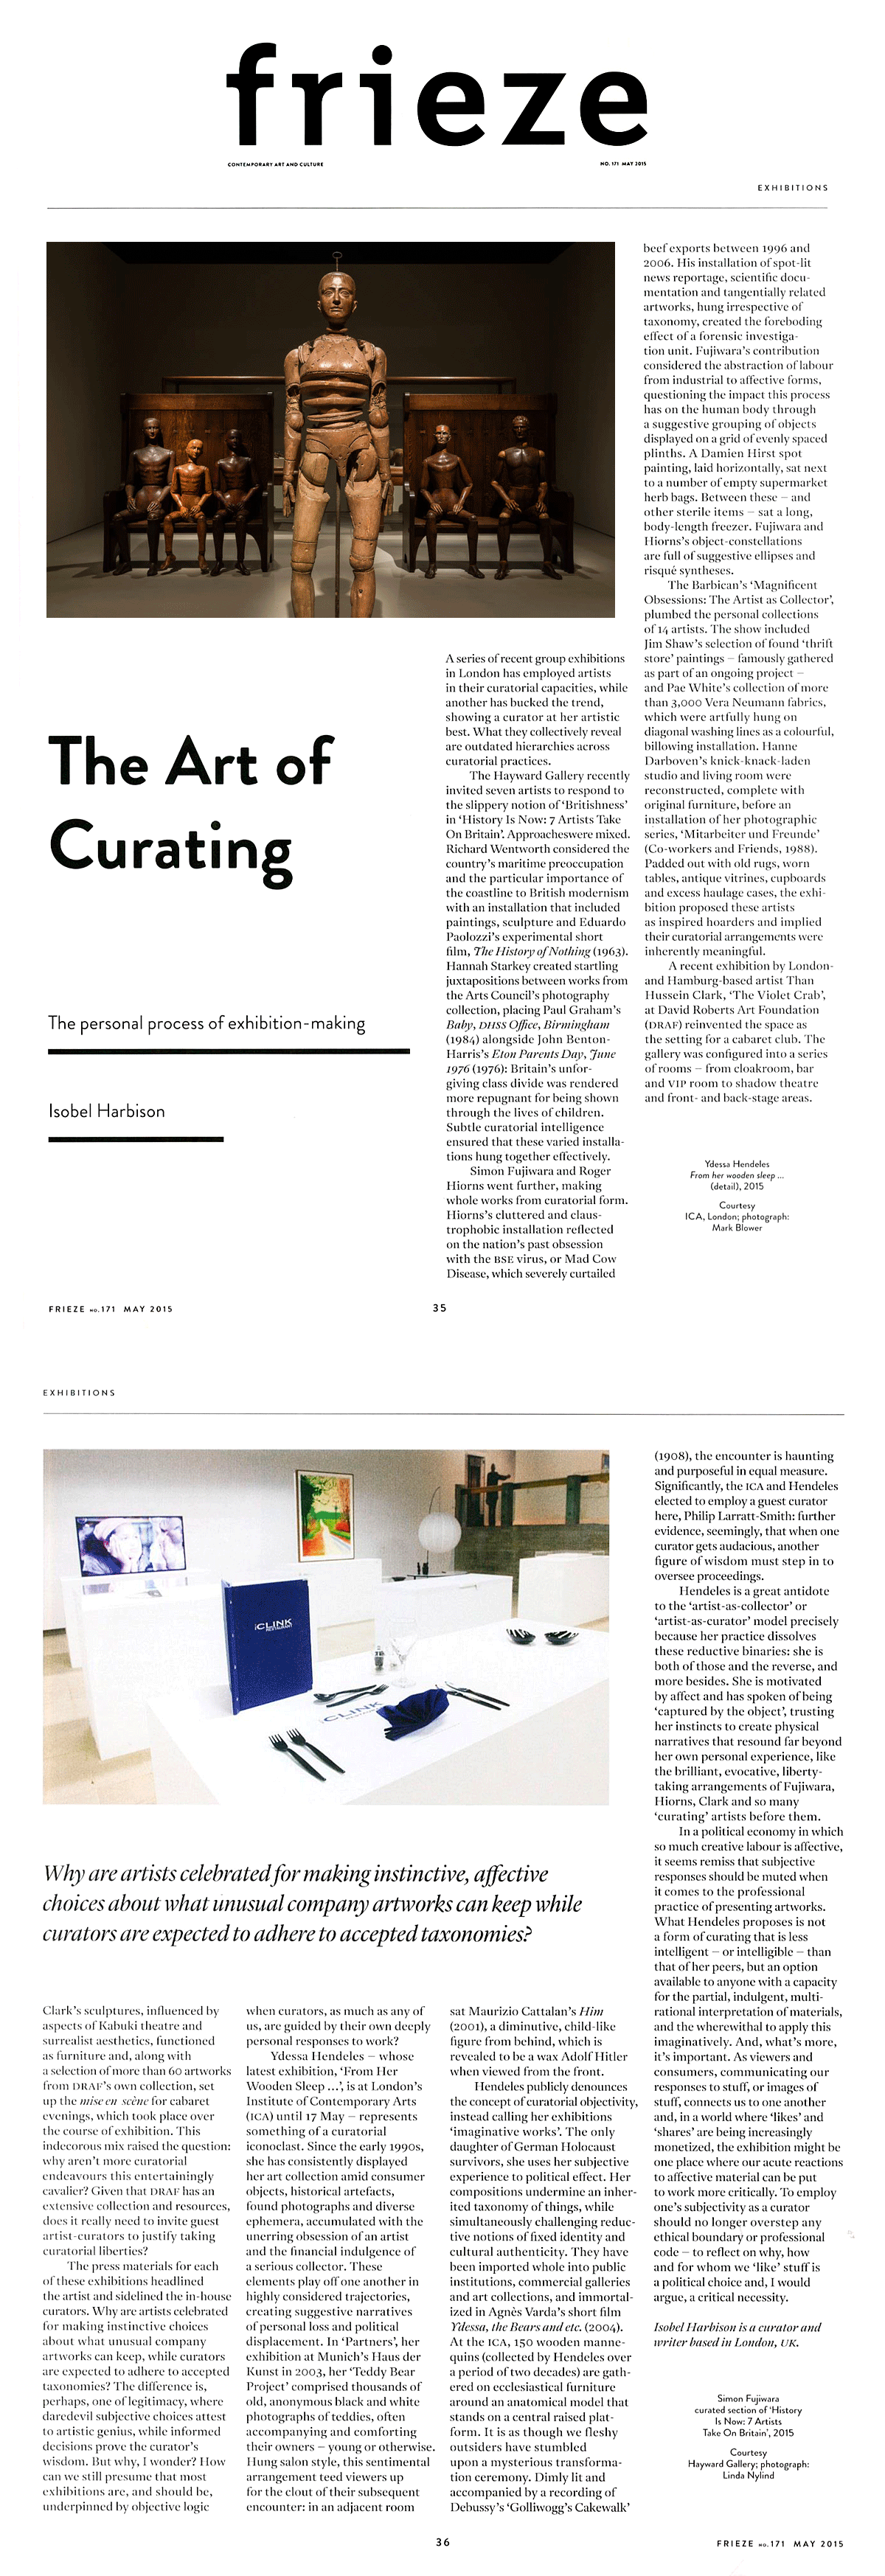 Frieze article